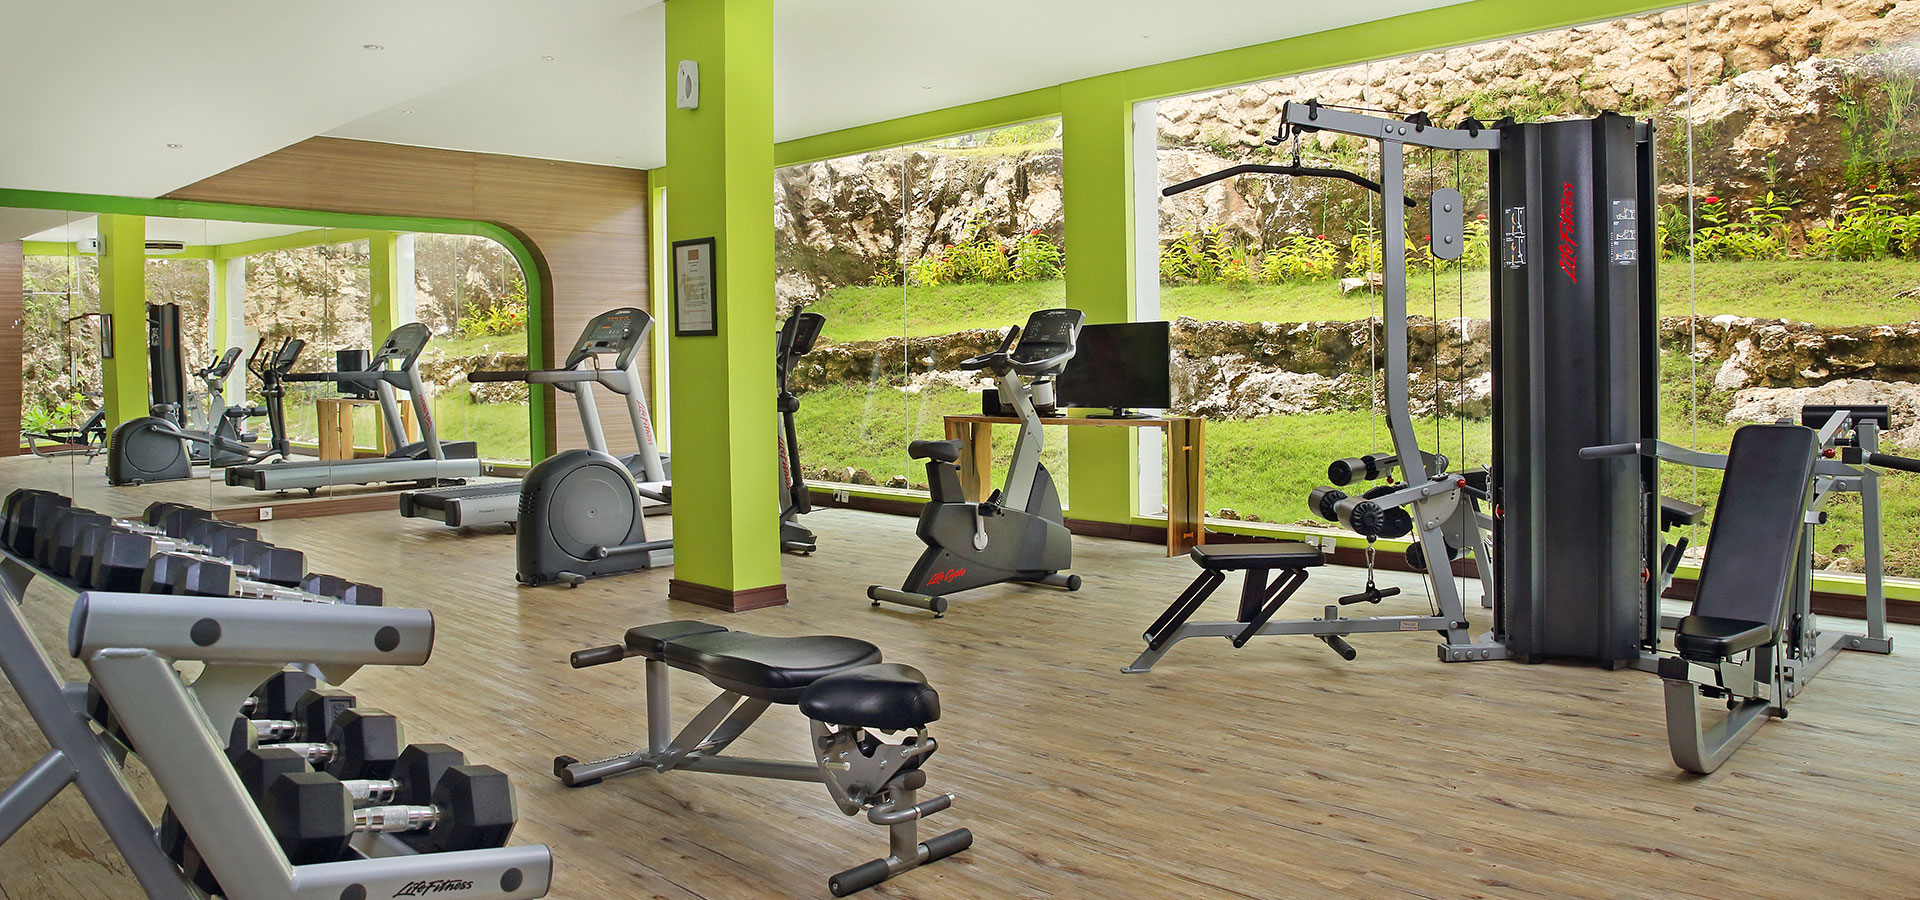 Fitness centre facilites